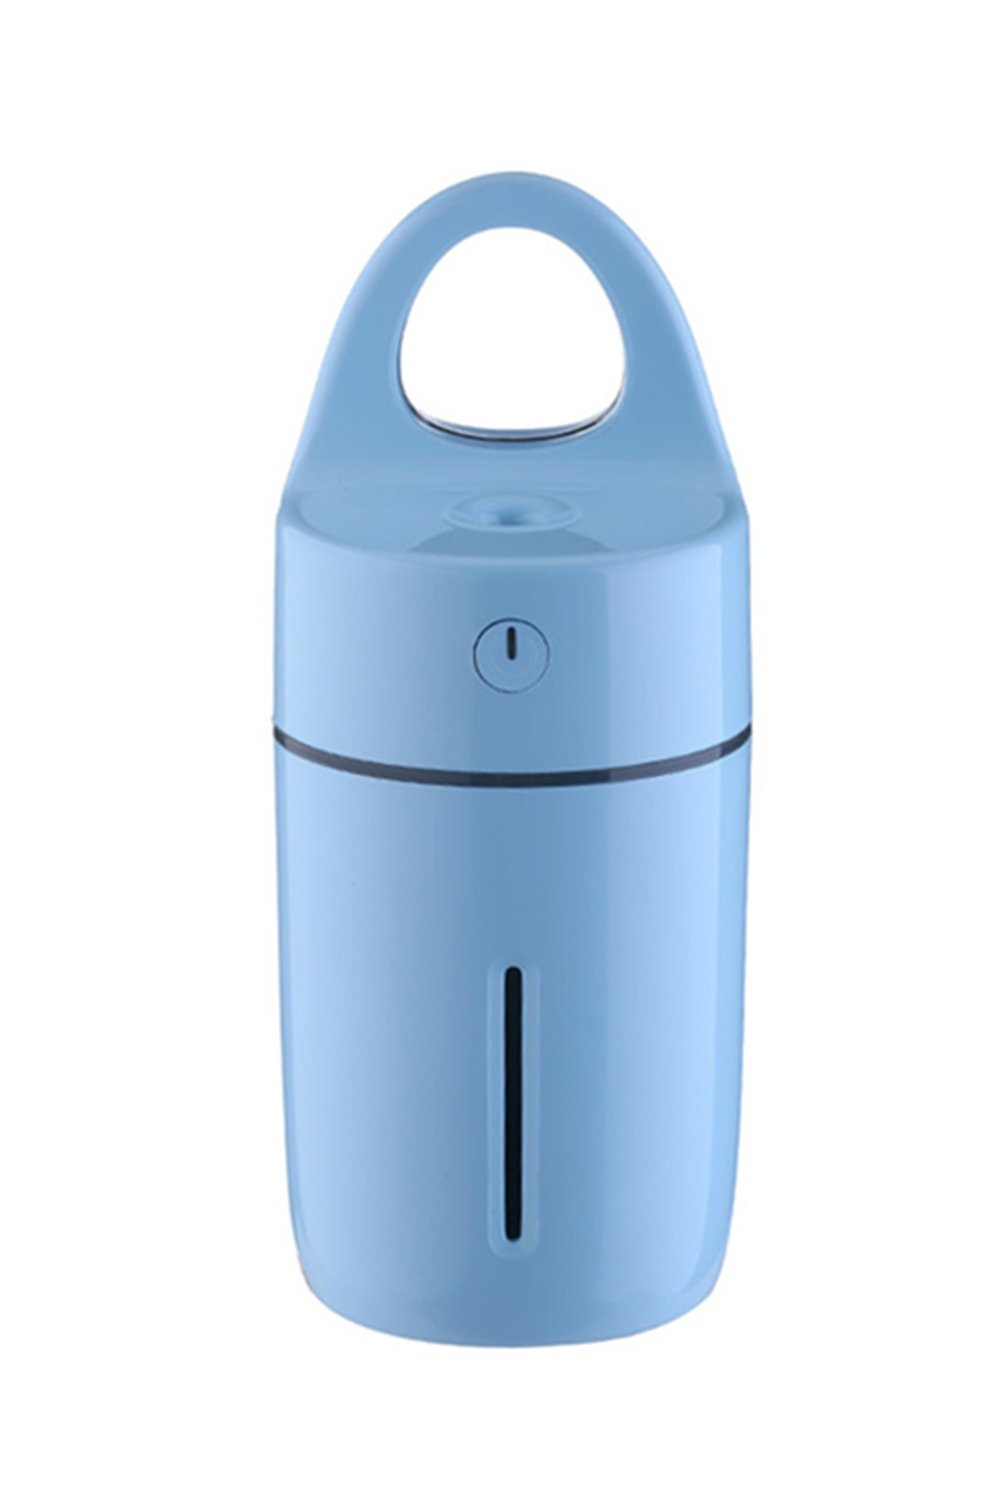 Innerest Portable Mini Humidifier Cool Mist for a single room office desk kids night lights lamp (Magic Cup, Blue)